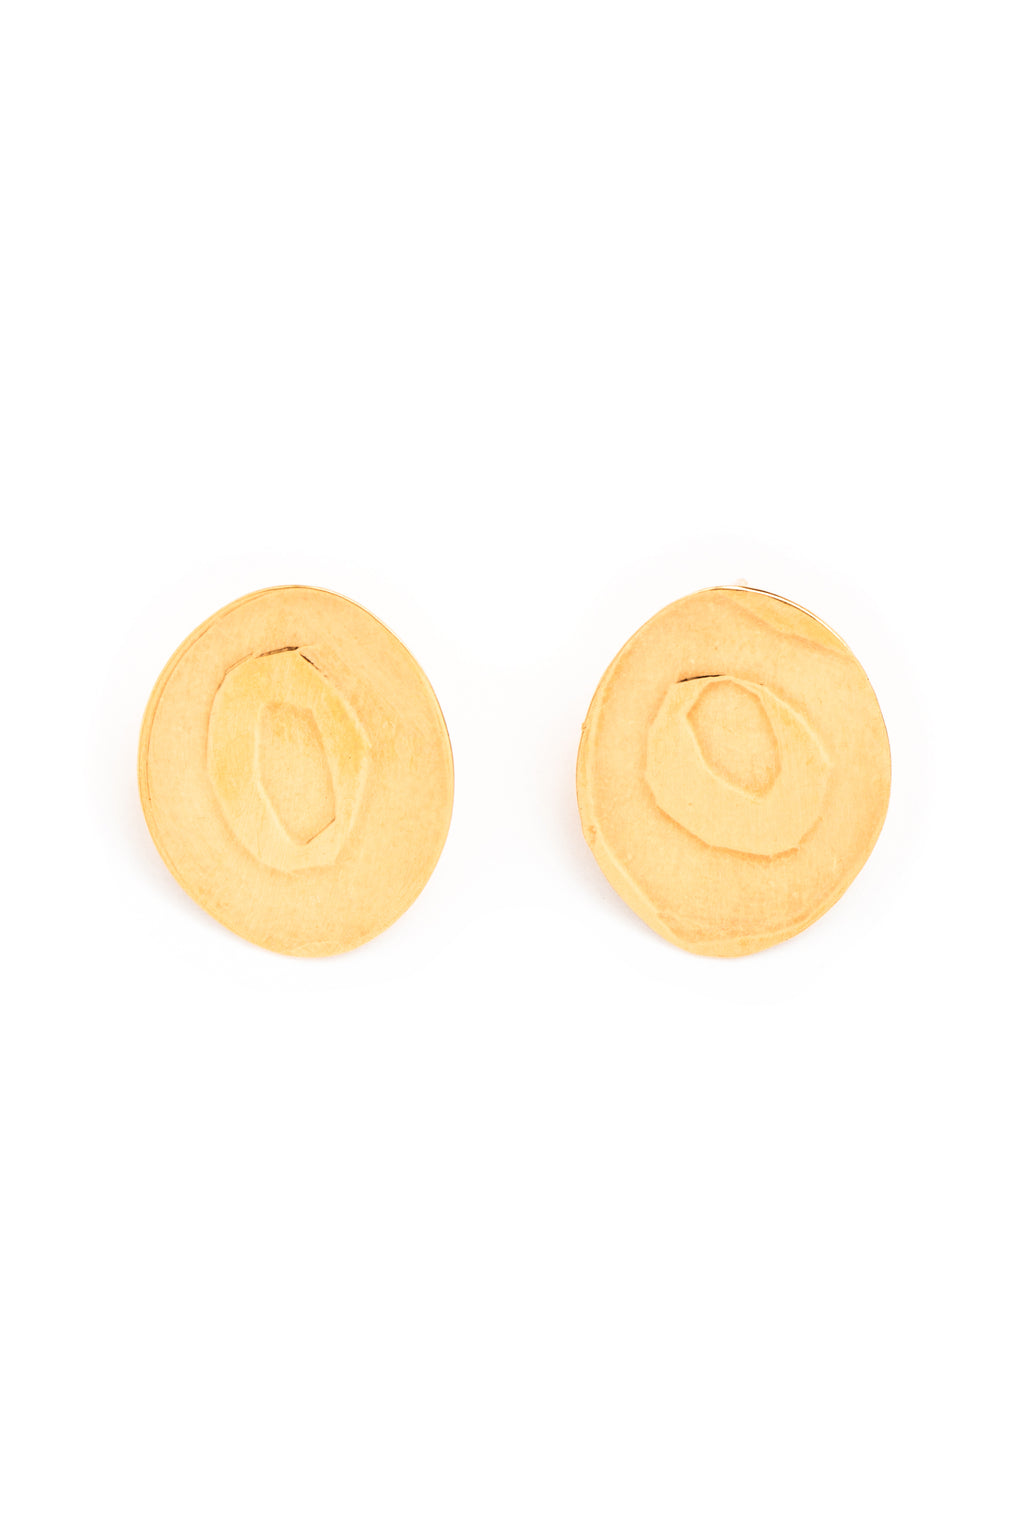 Gold Ooh Stud Earrings